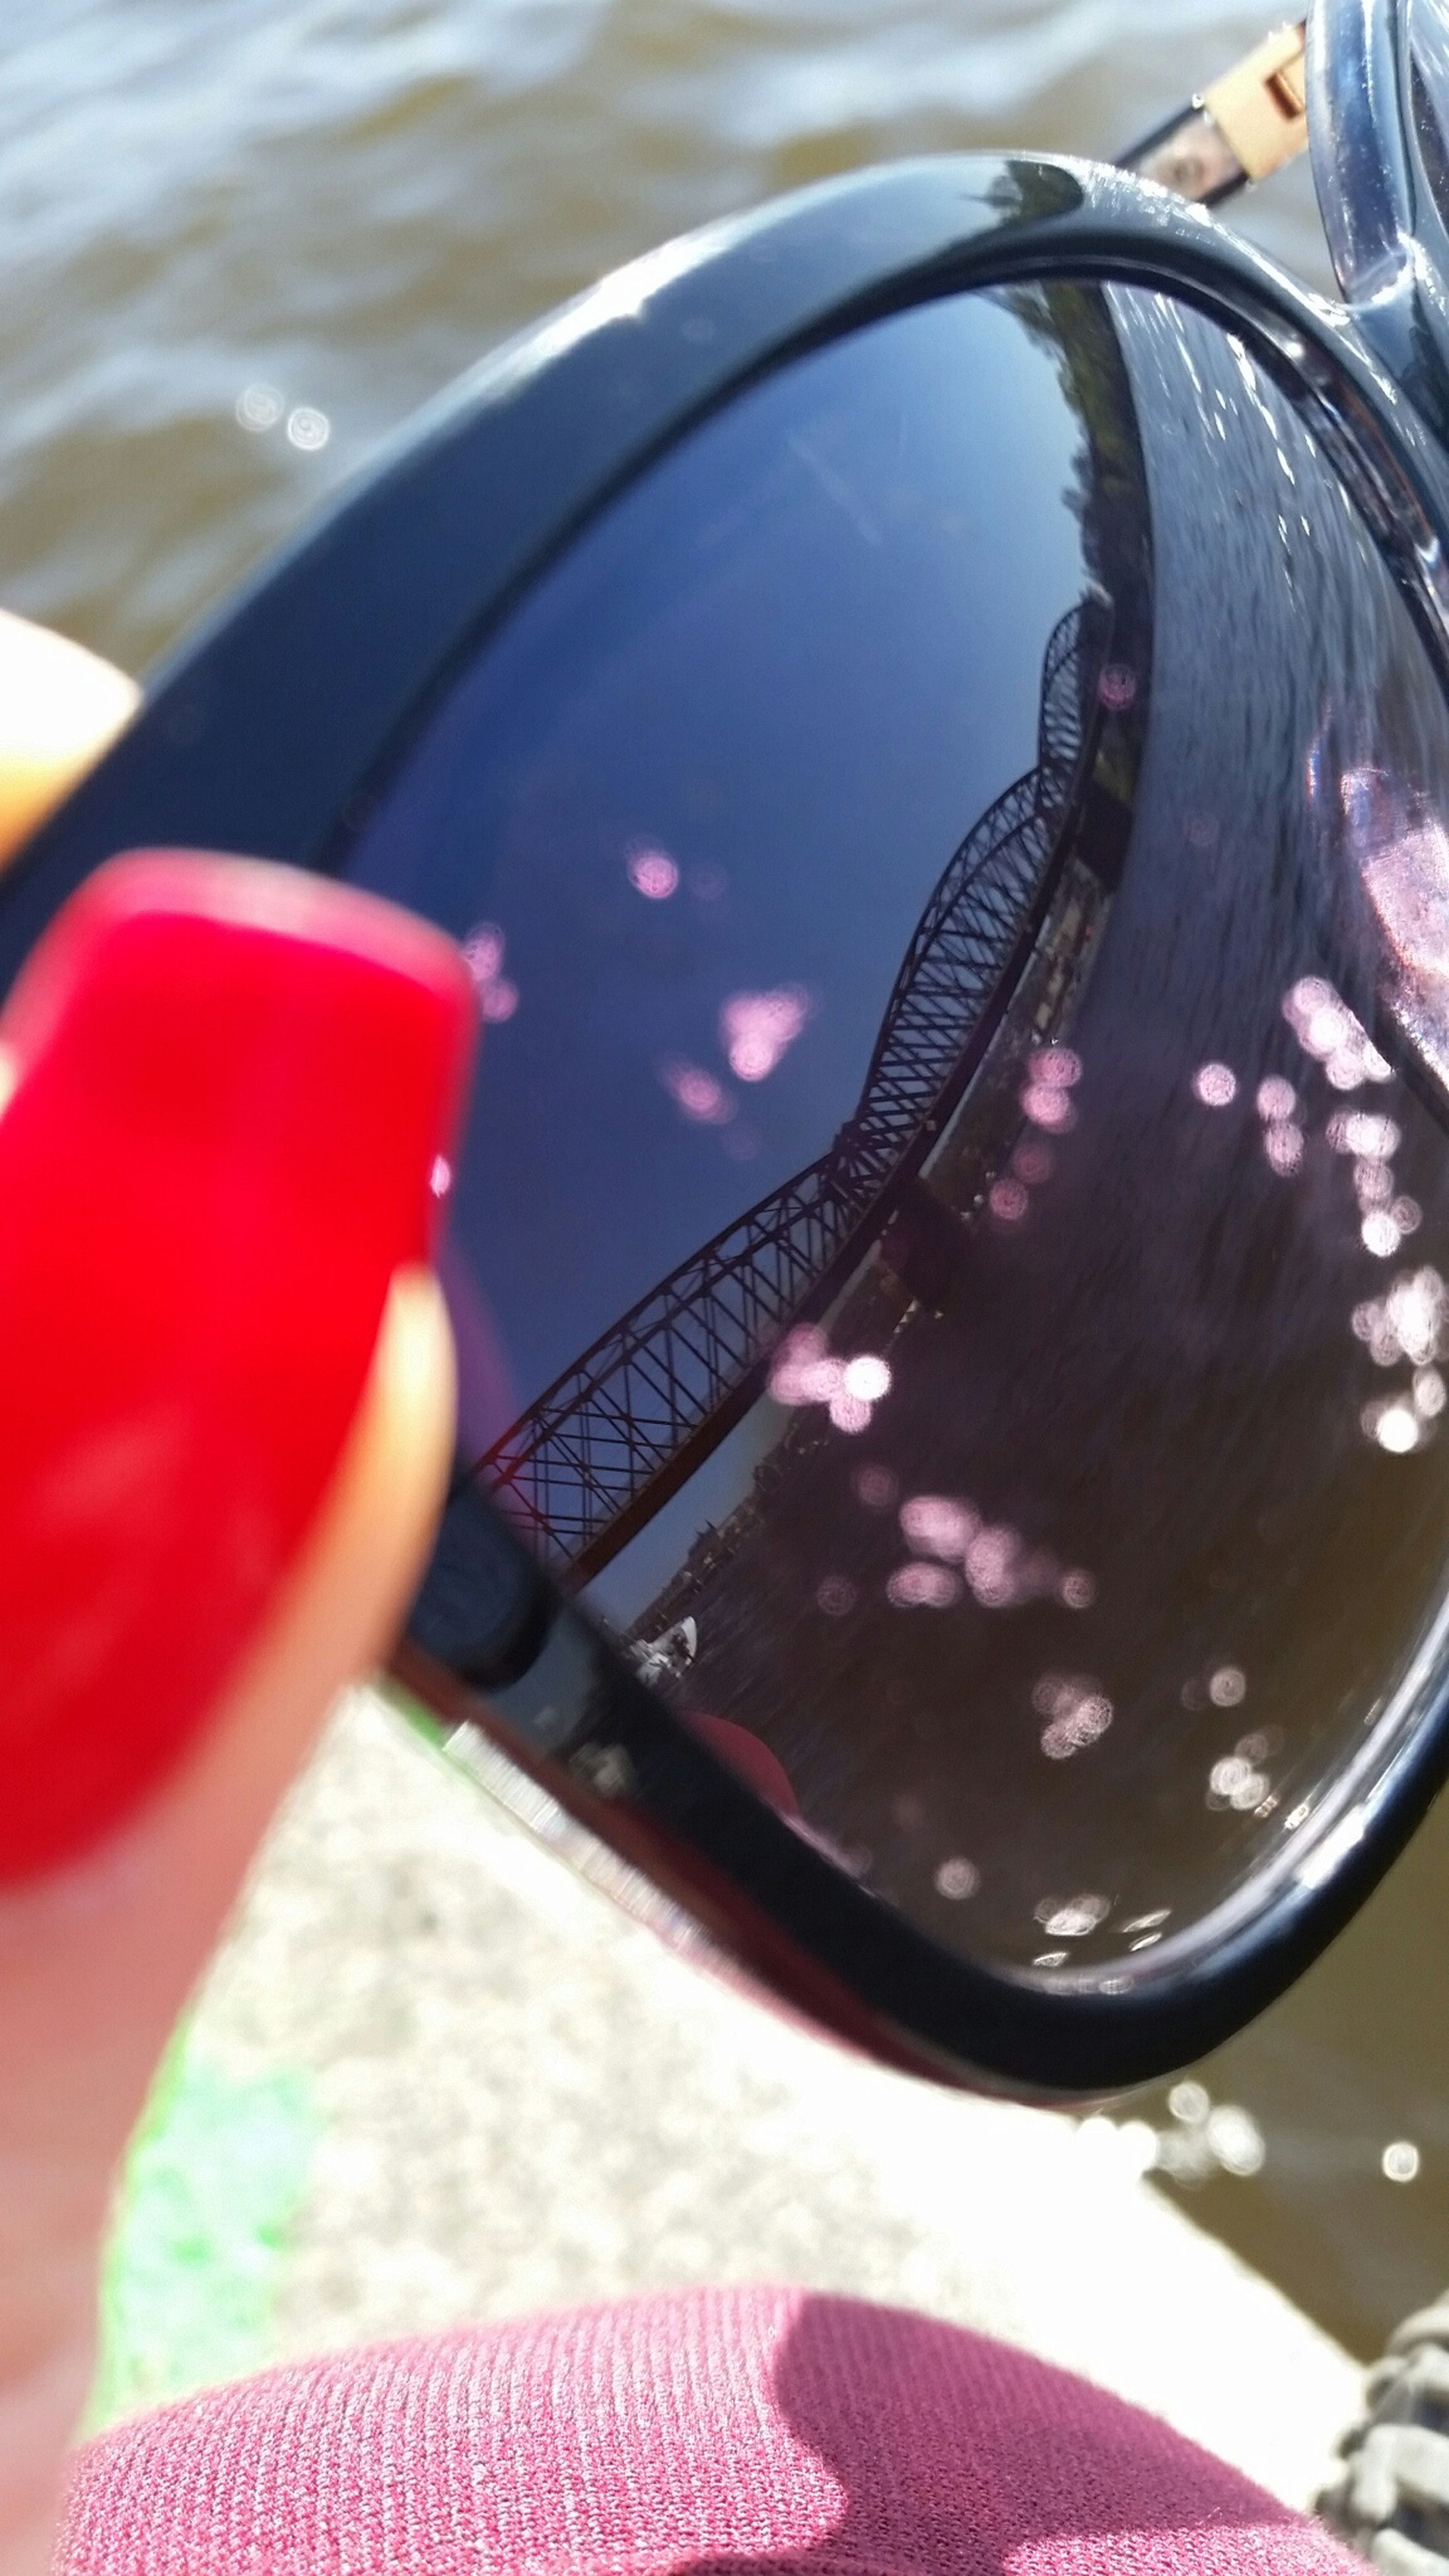 part of, close-up, focus on foreground, mode of transport, cropped, land vehicle, transportation, car, reflection, water, red, day, glass - material, indoors, person, transparent, sunglasses